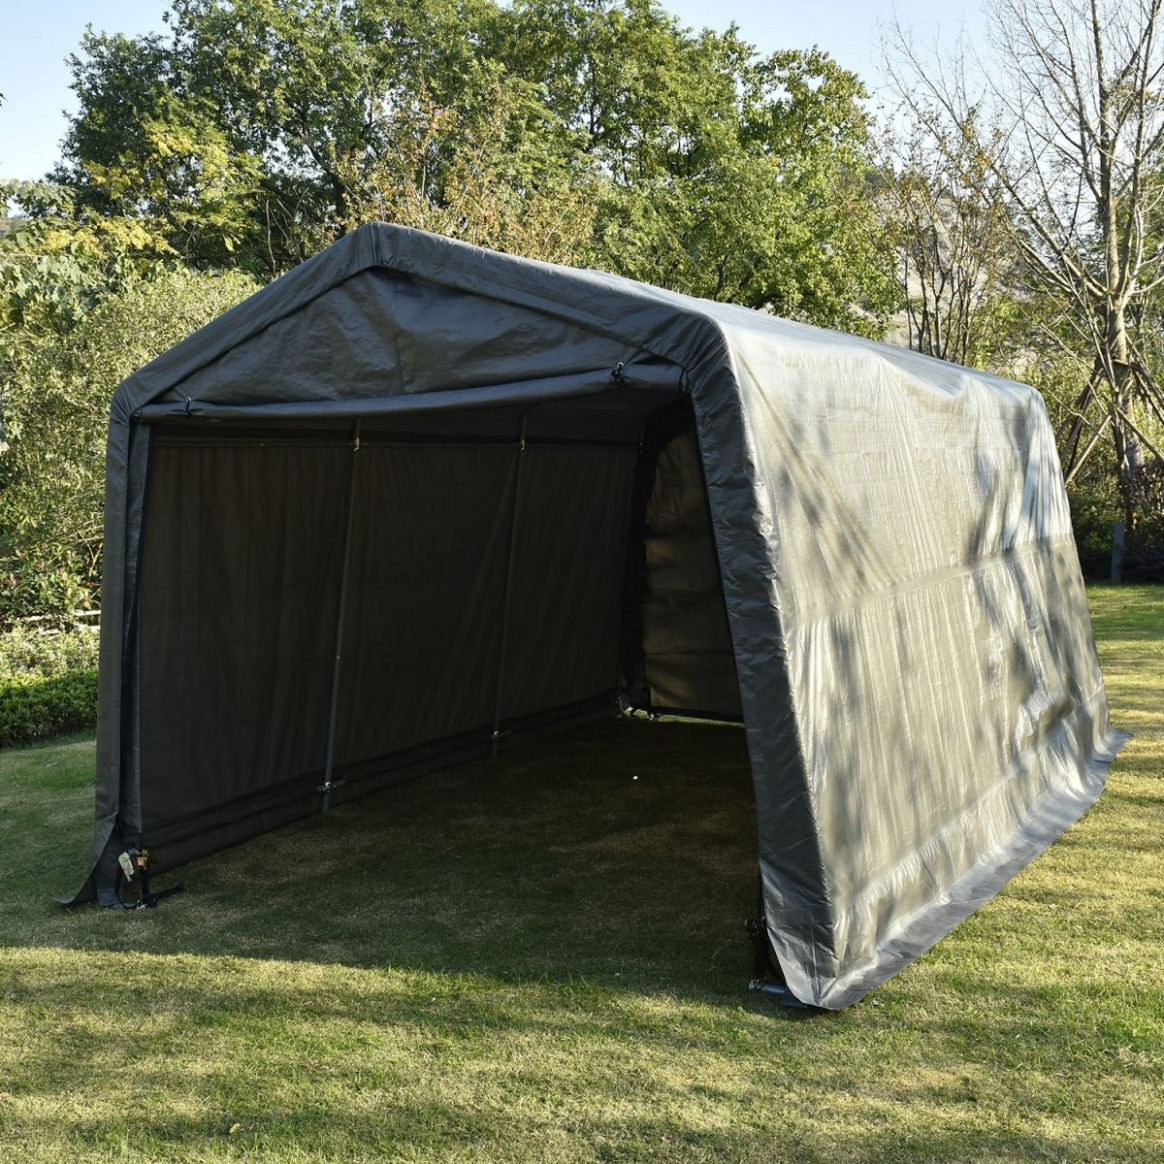 8 Portable Carport Shelters To Take Care Of Your Car Cloth Carport Canopy.jpg